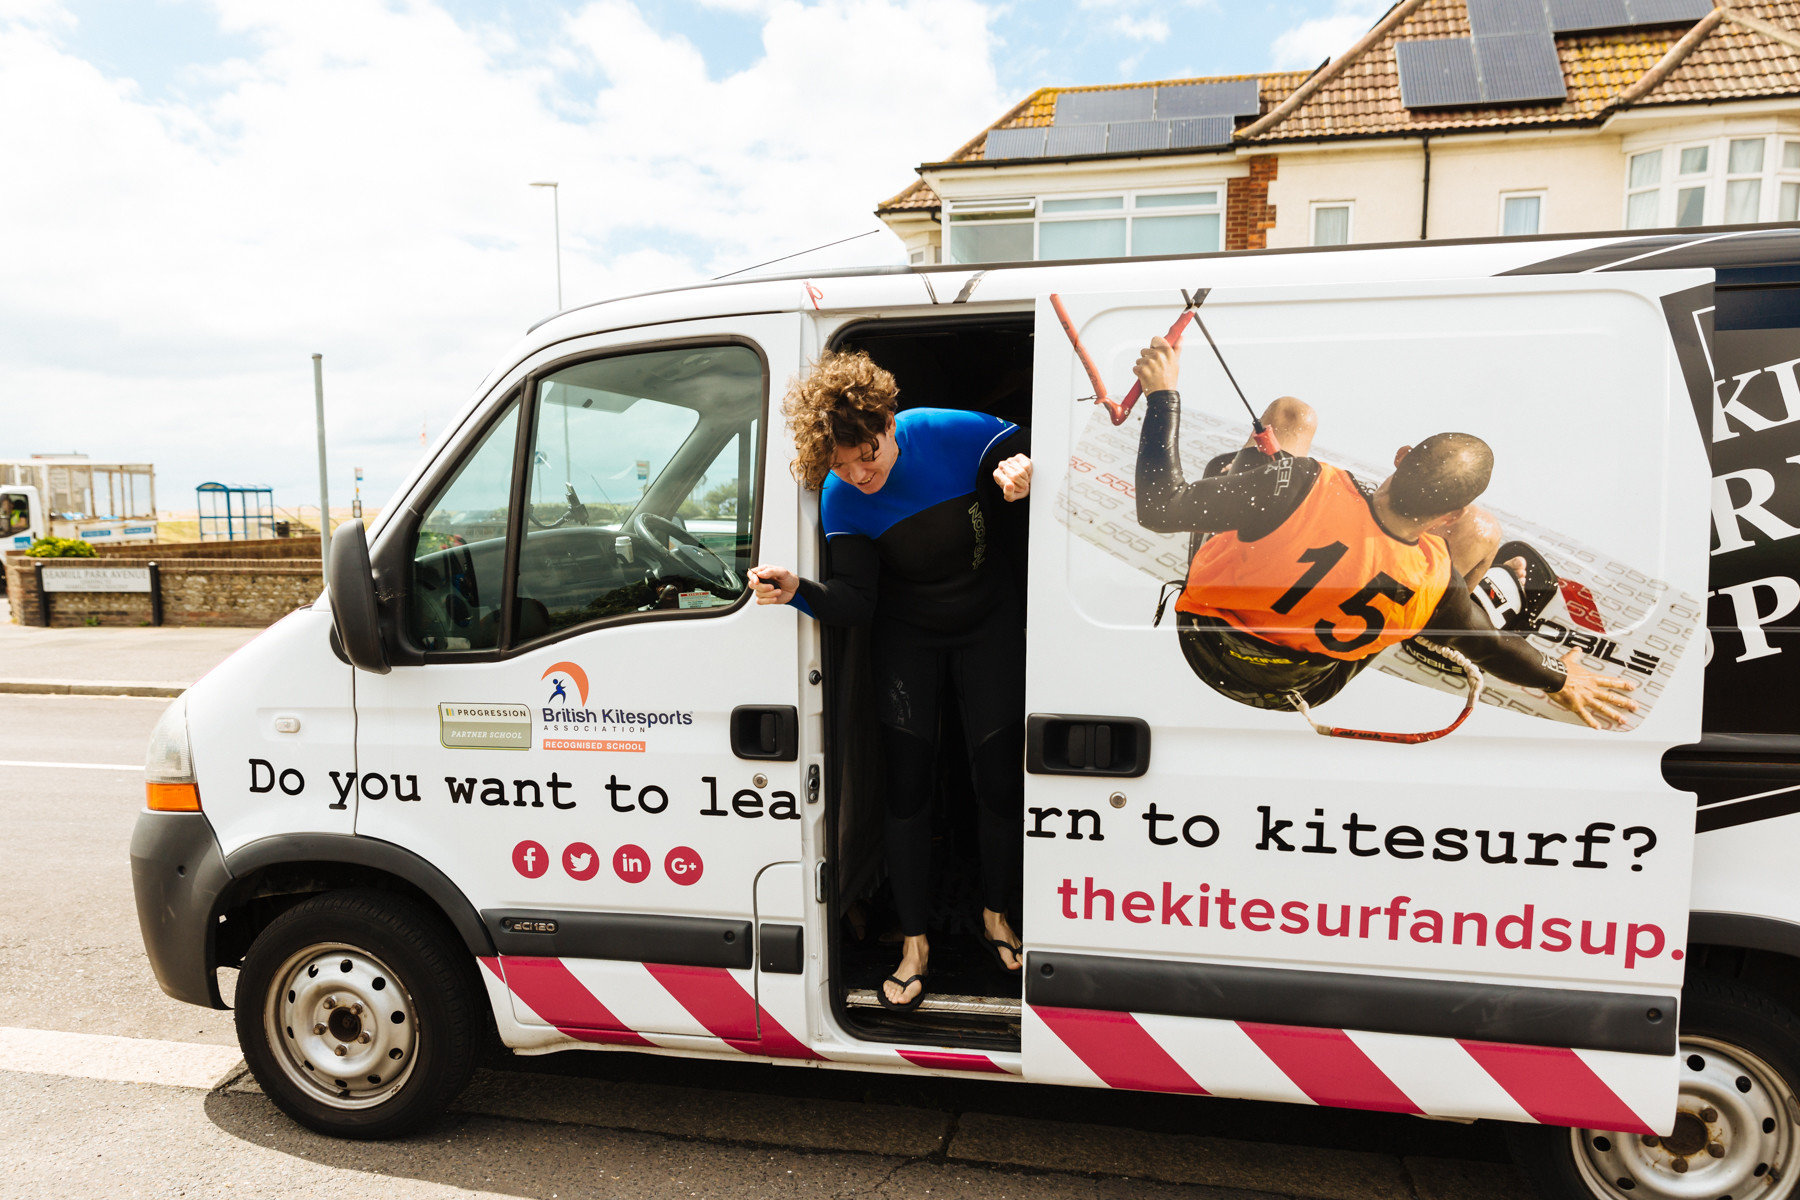 Christine had her van sign written by The Sussex Sign Company